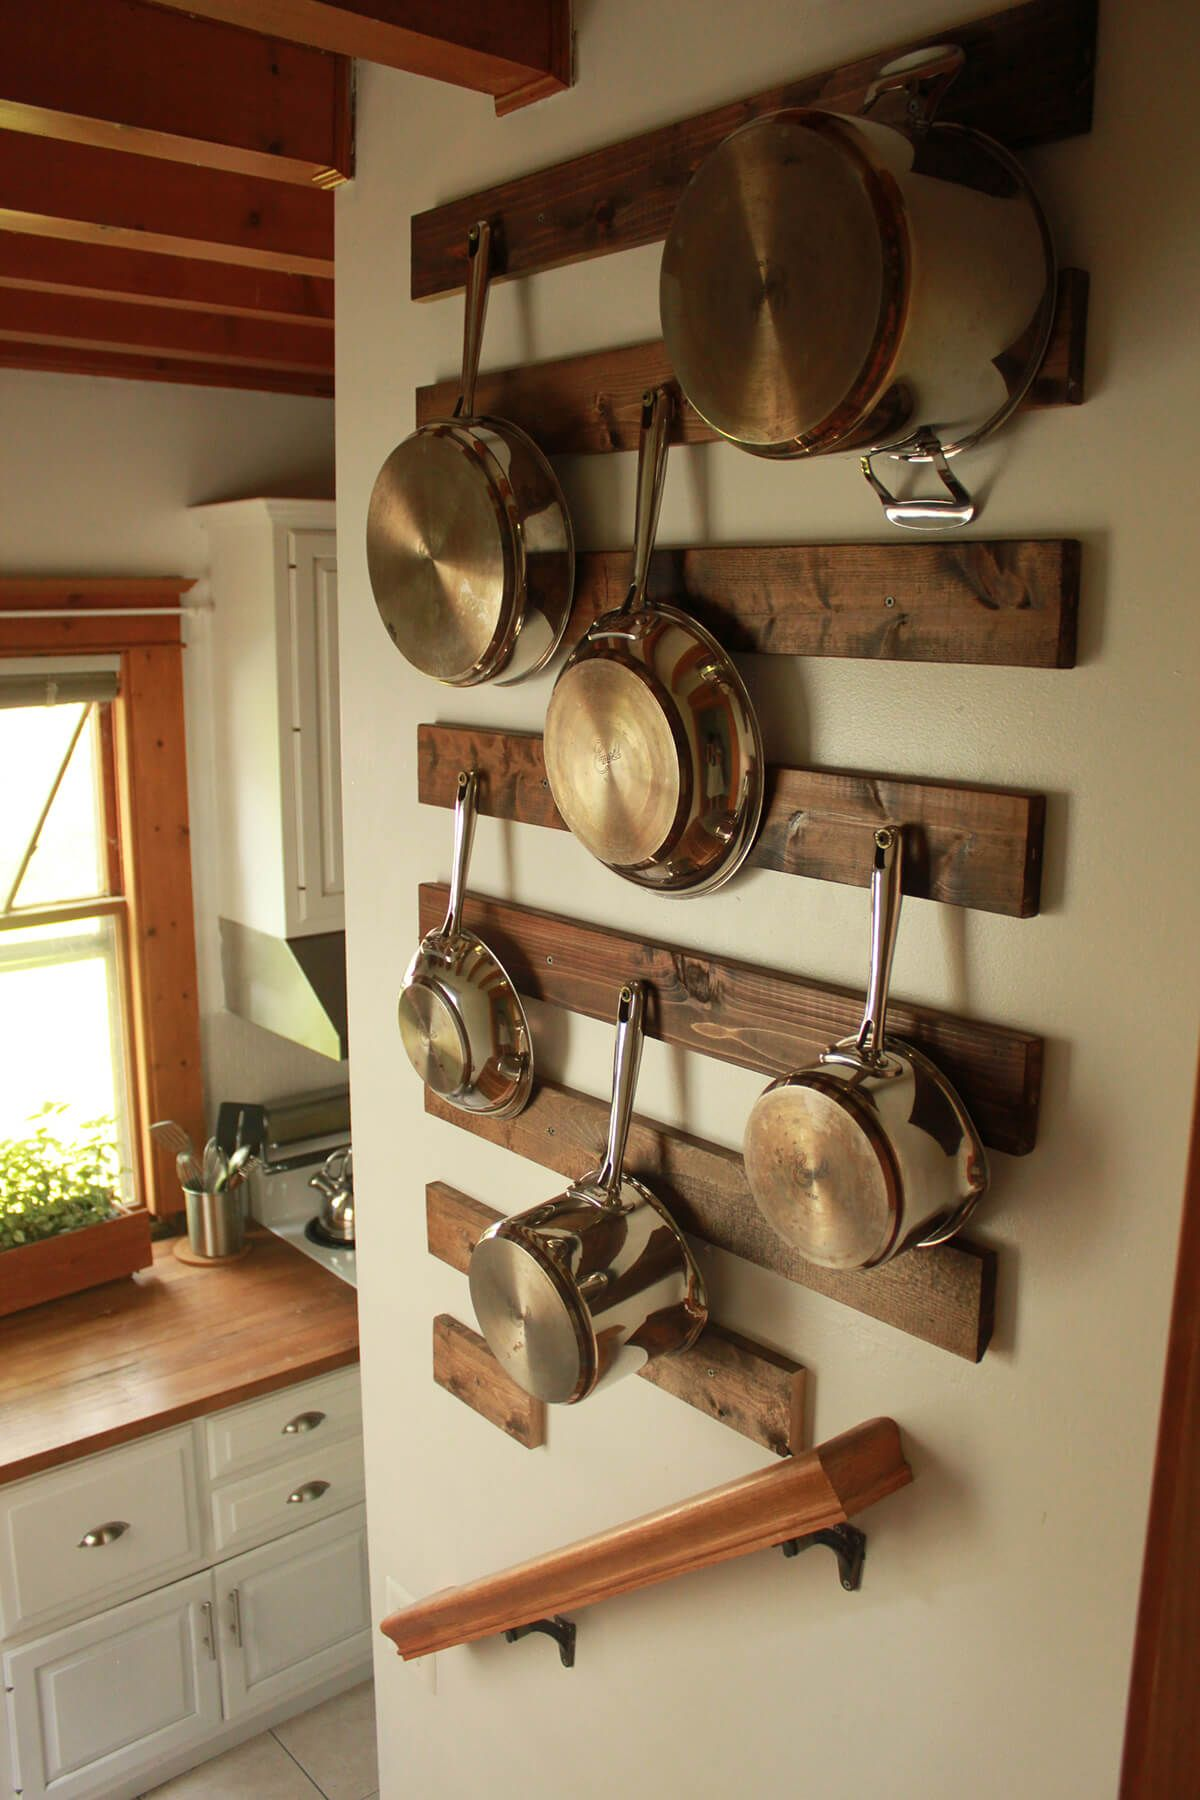 36 Pretty Kitchen Wall Decor Ideas to Stir Up Your Blank Walls